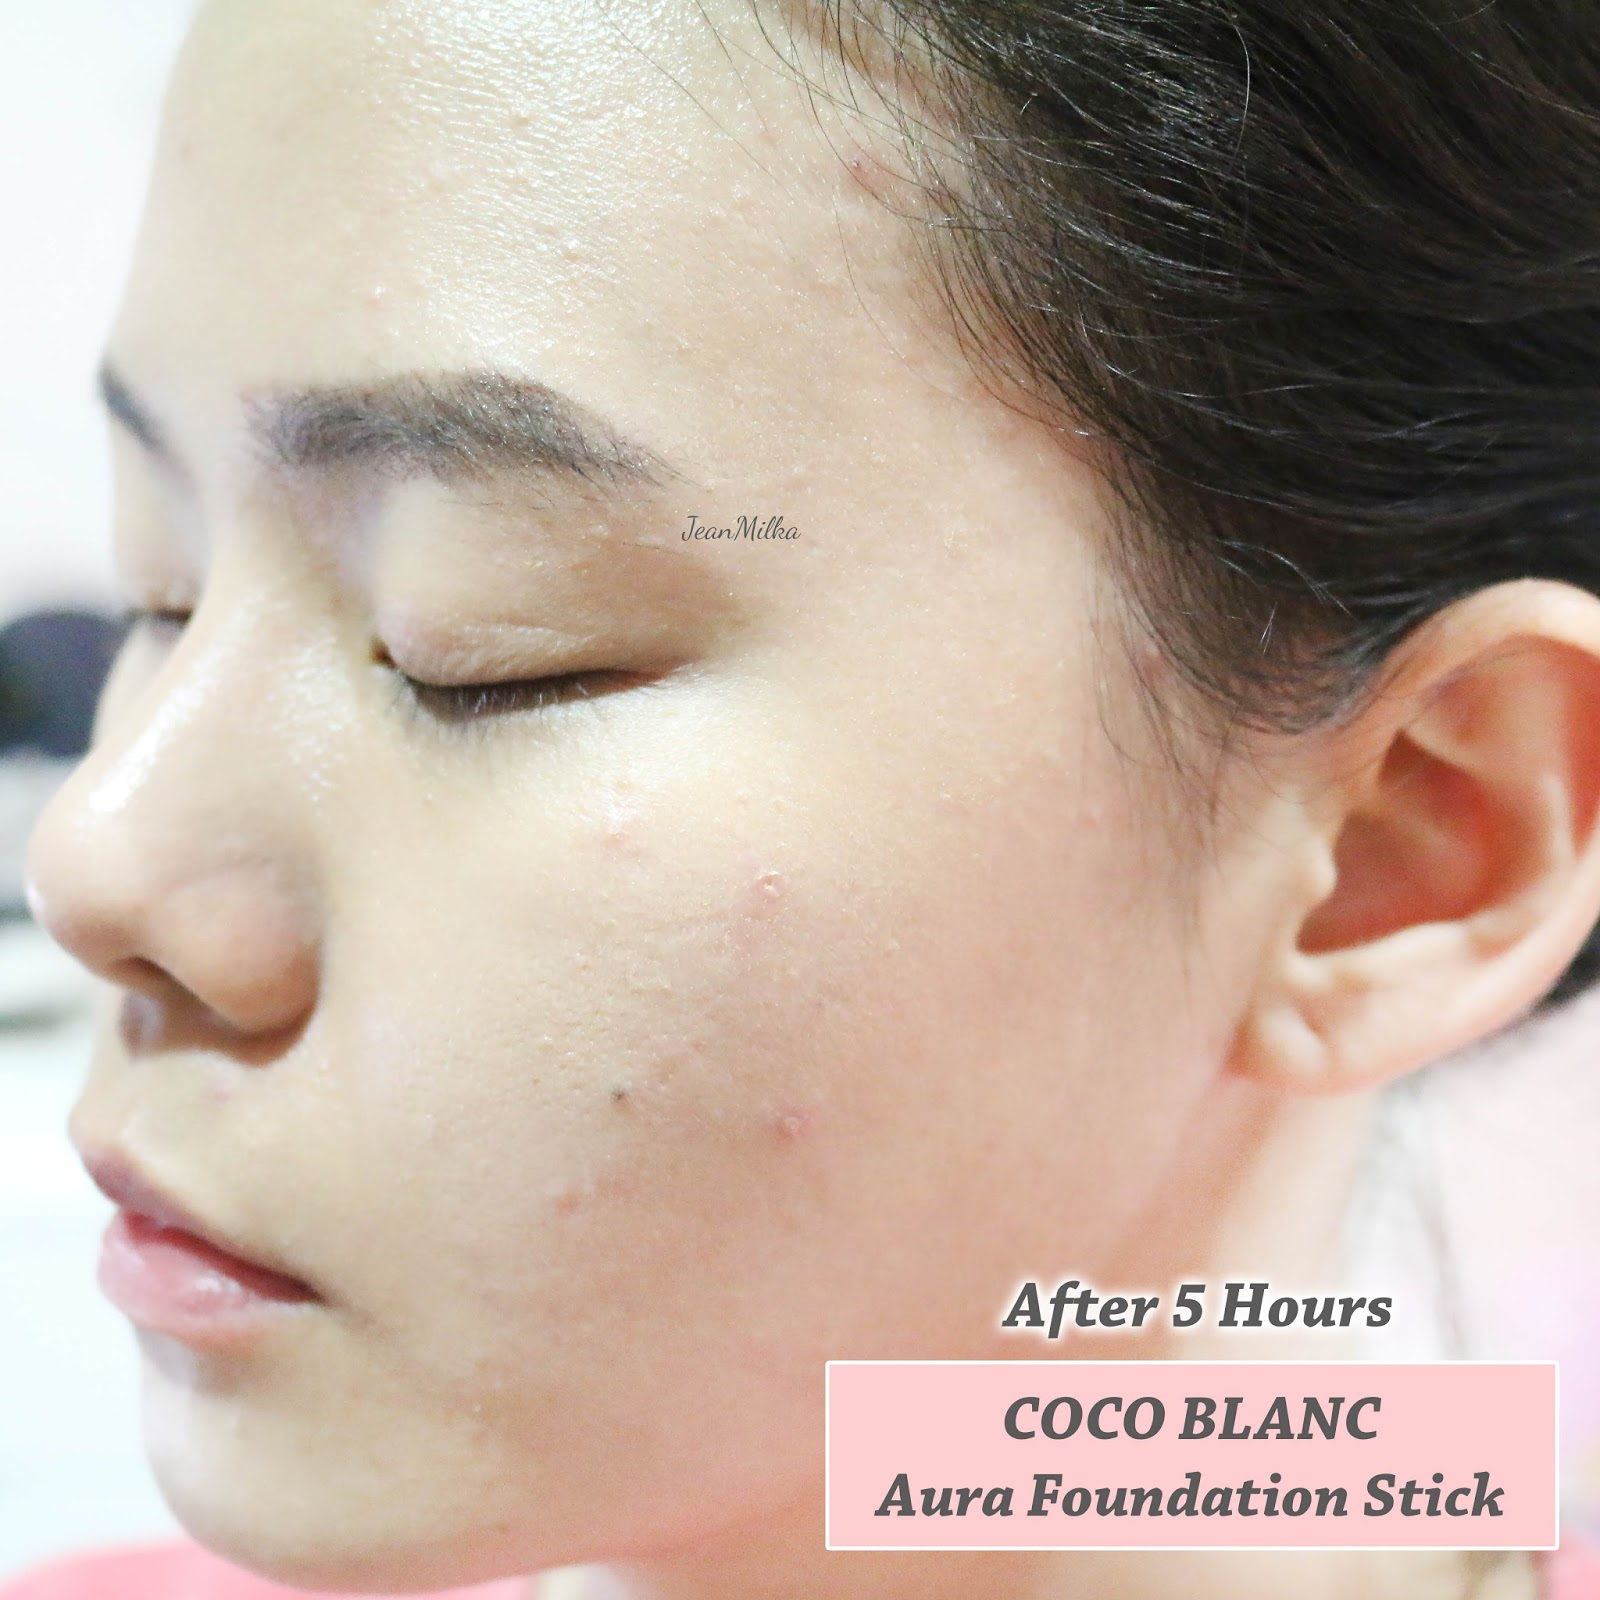 coco blanc, coco blanc stick foundation, stick foundation, korean, korean makeup, korean beauty, review, indonesia, foundation, makeup